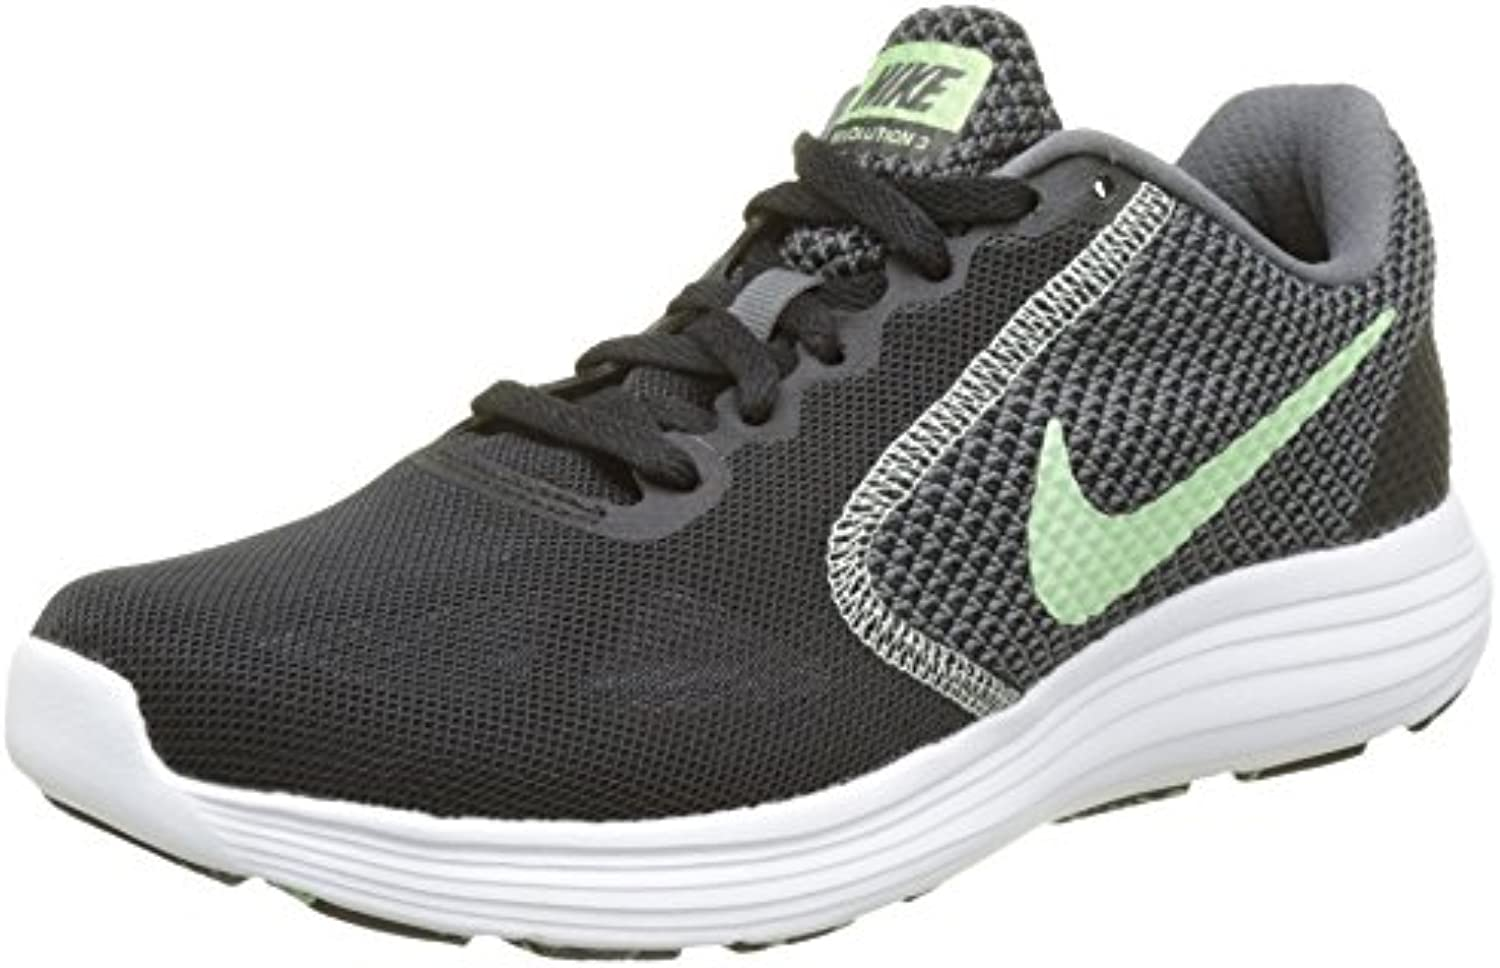 Nike Revolution 3 Zapatillas de Running para Mujer 12a517 single